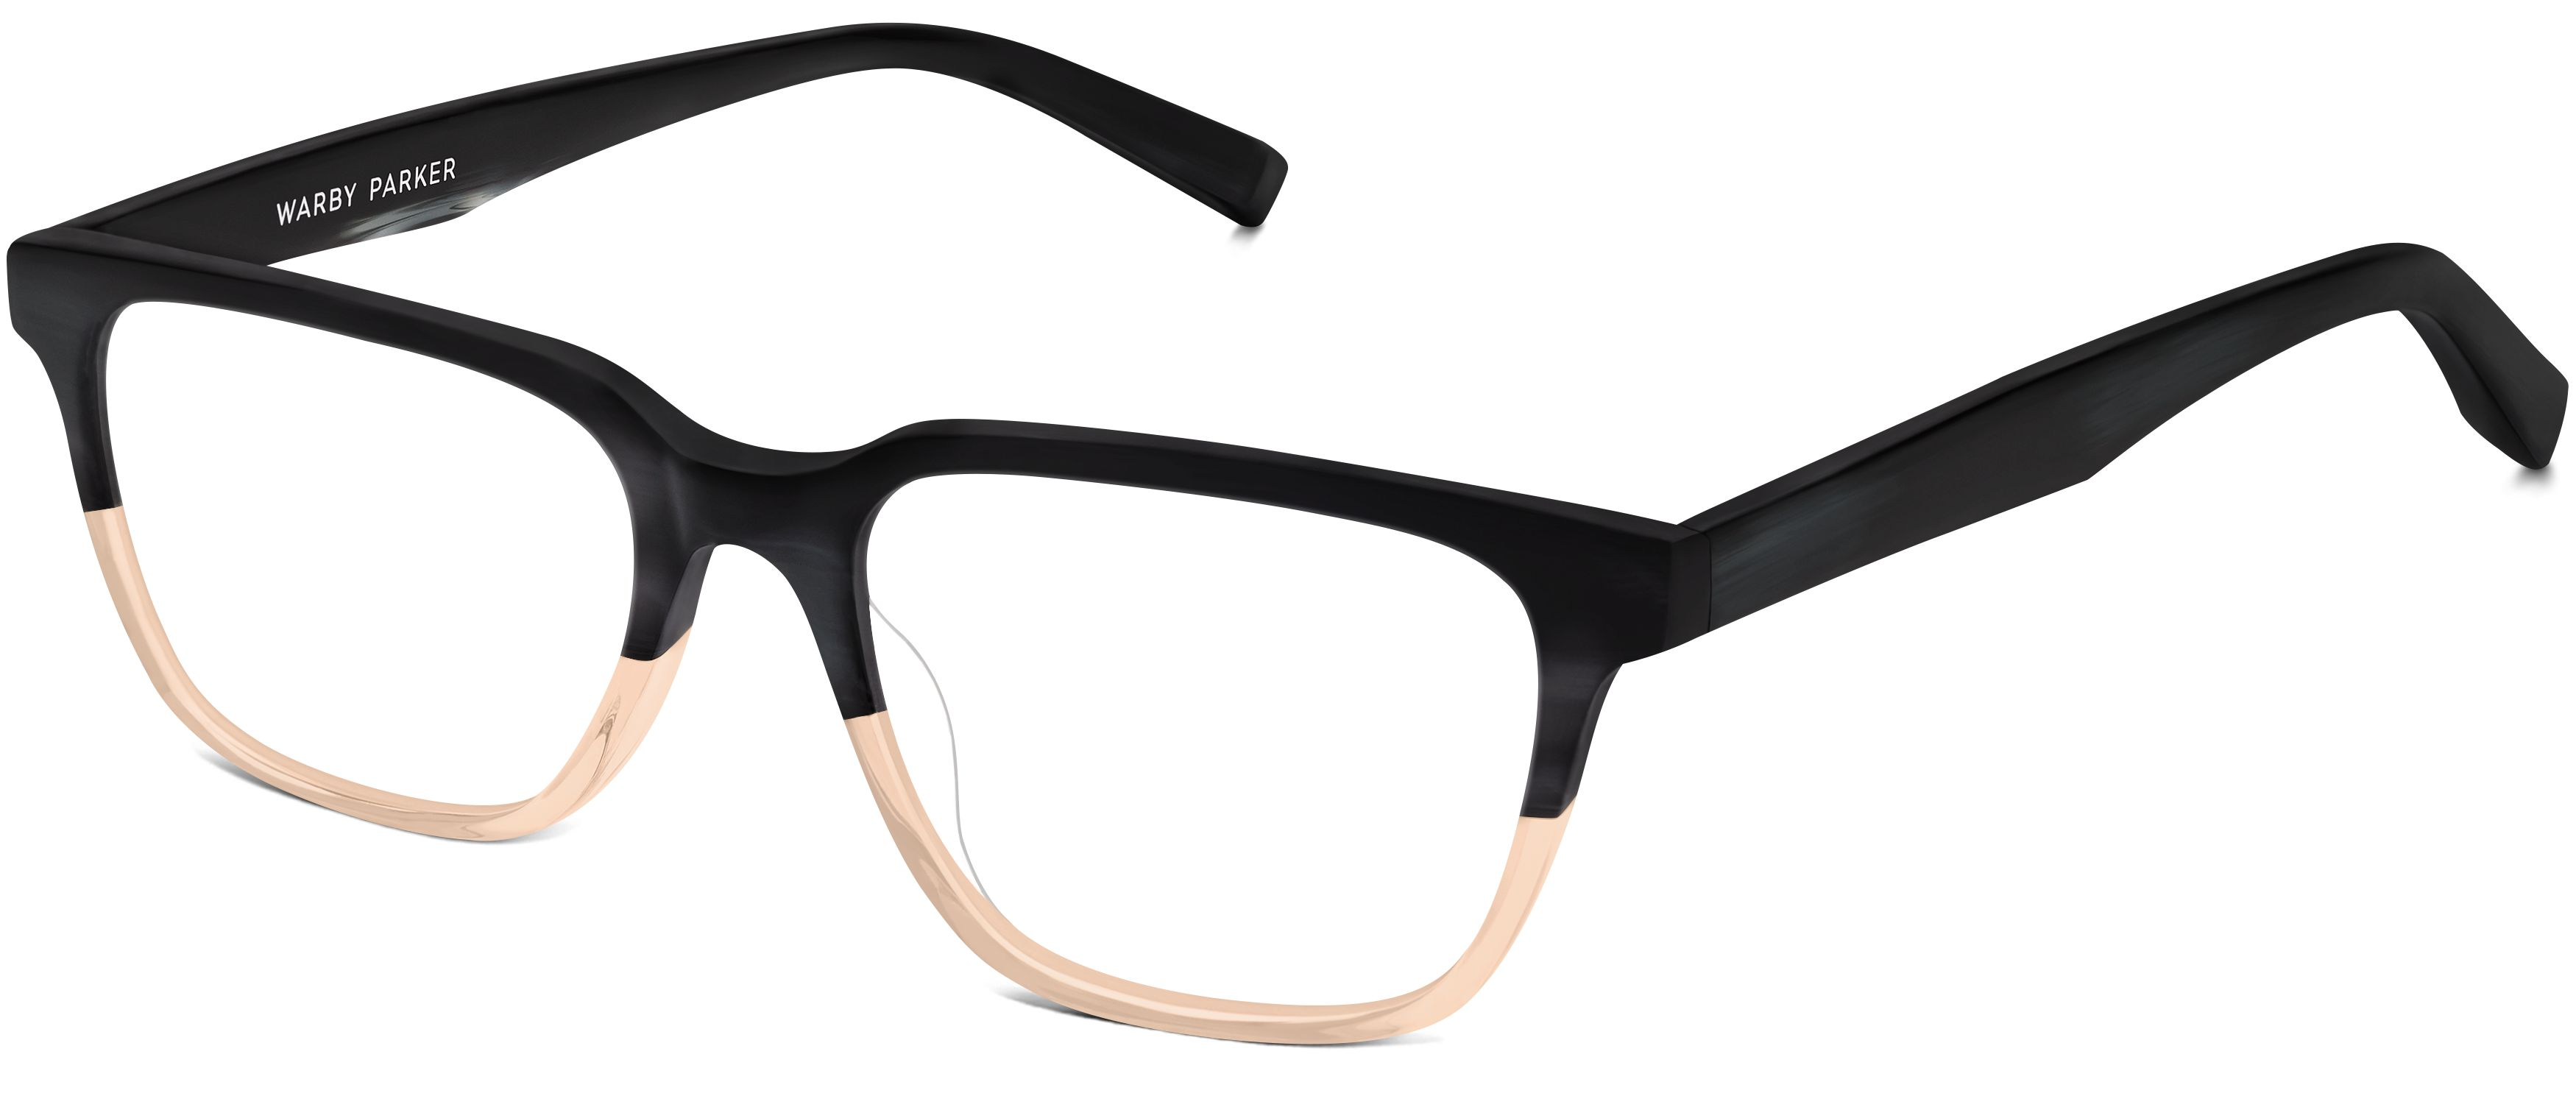 414e3088ed503 Gilbert Eyeglasses in Mission Clay Fade for Women